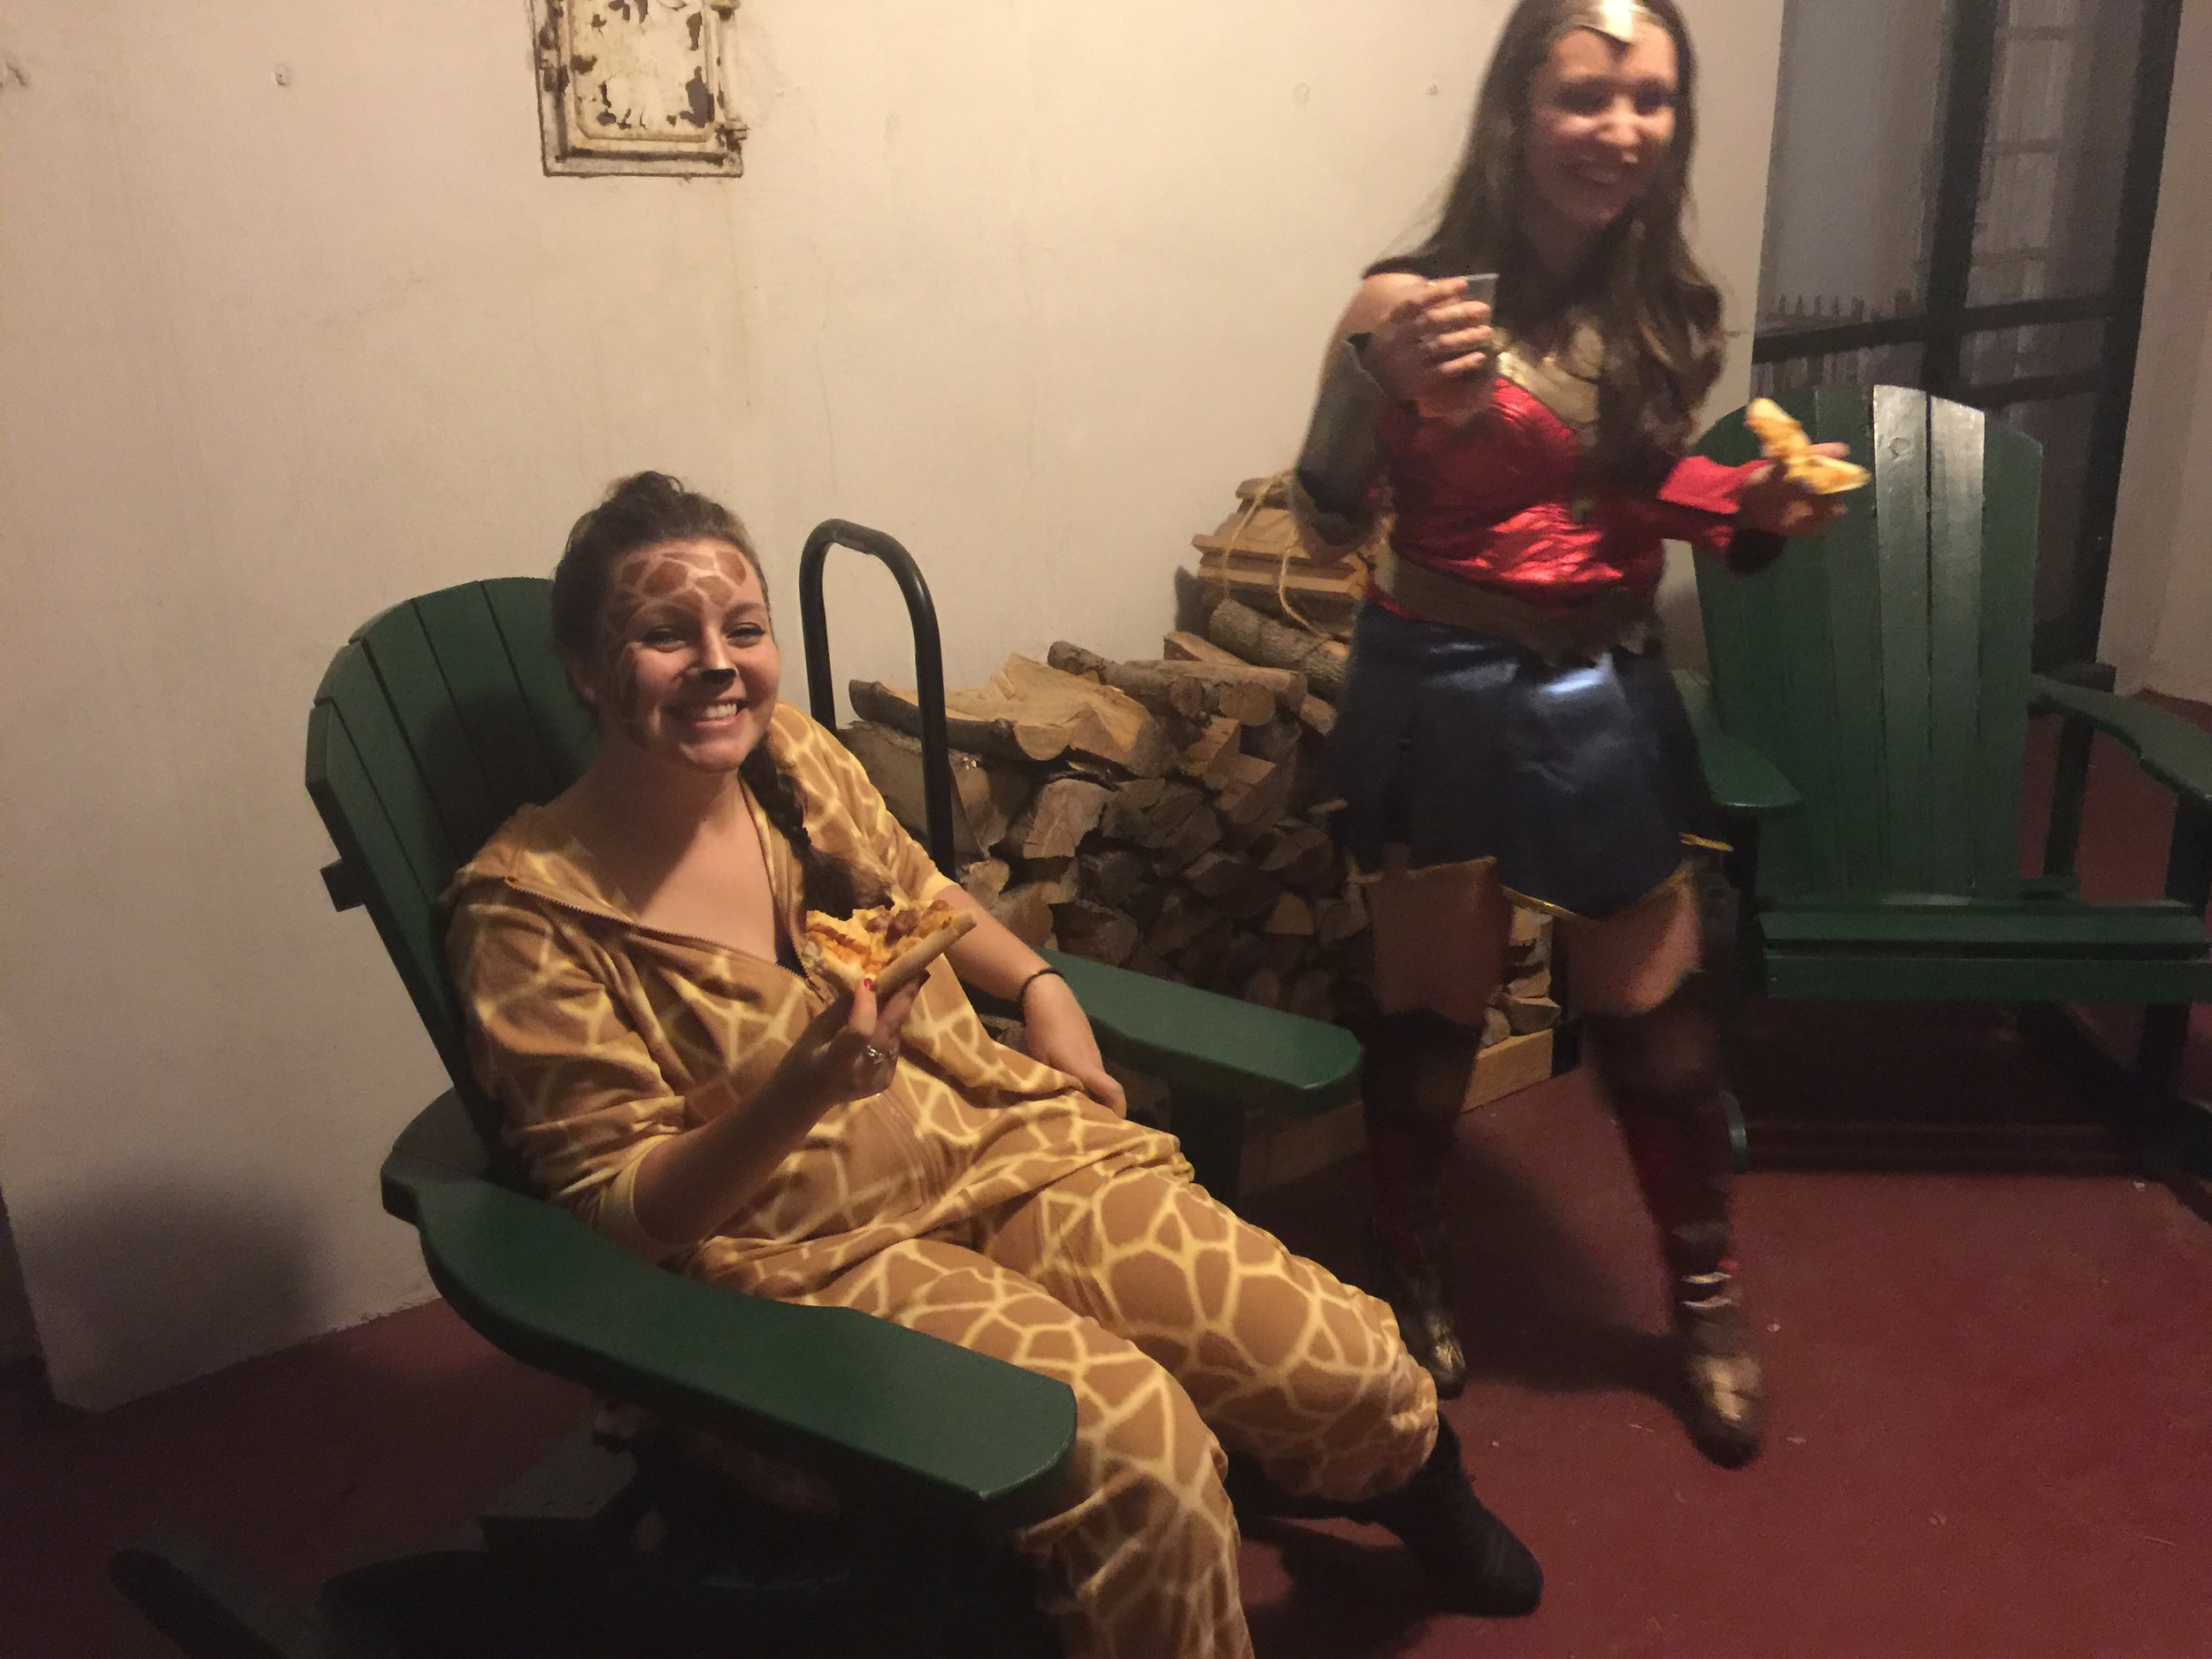 Lindsay Rathbun and Erica Colicino Lounging before party fun!